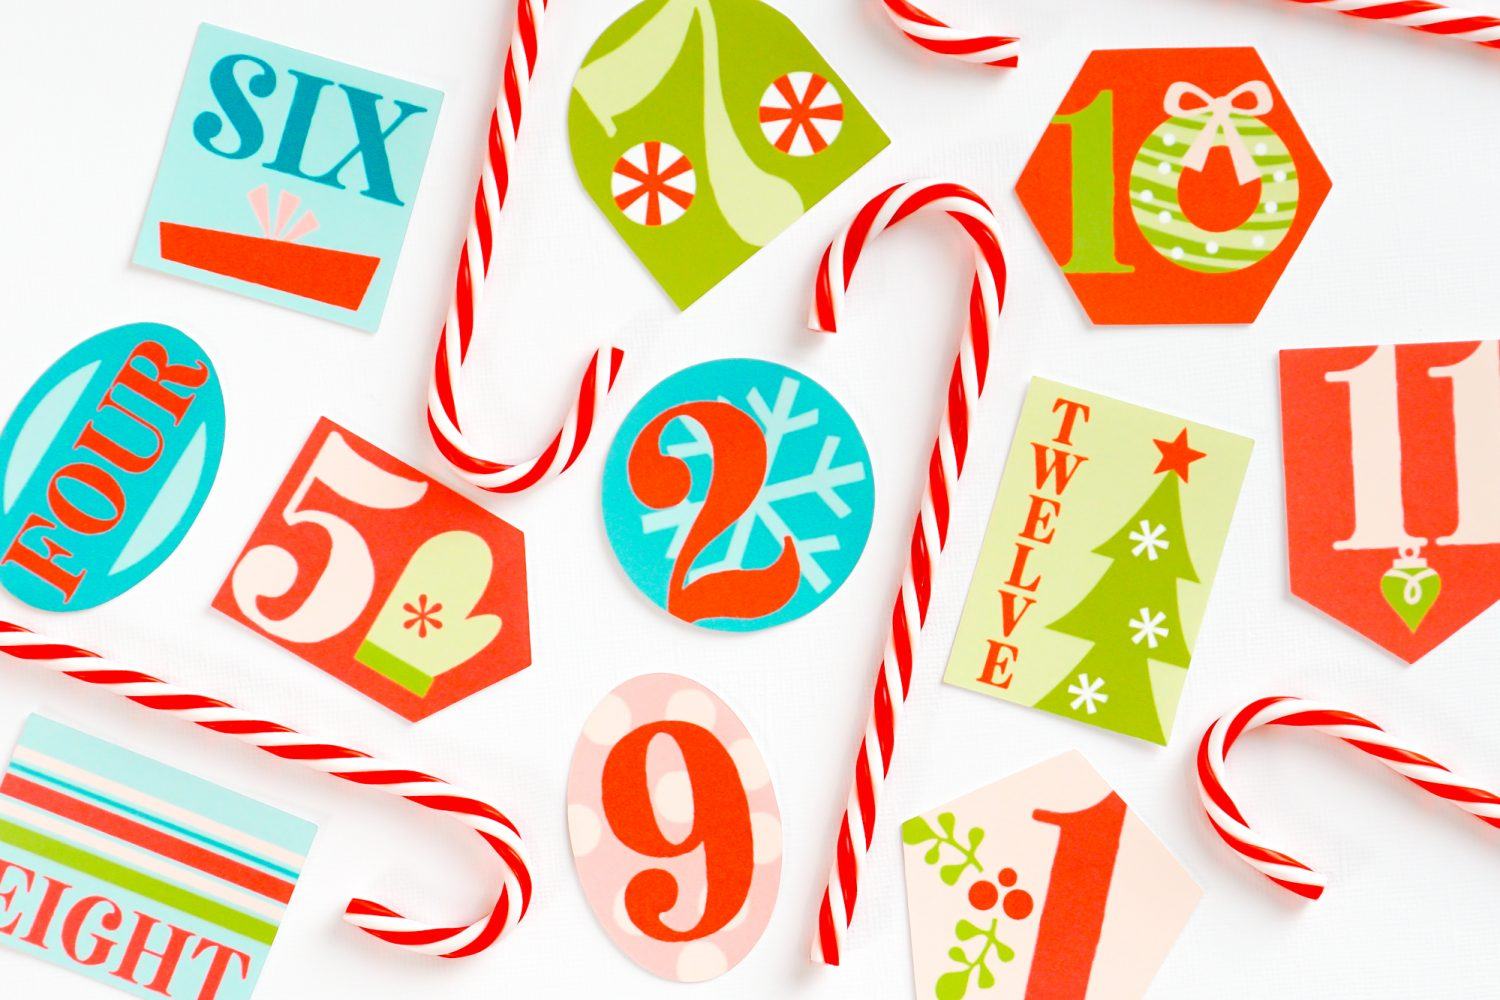 Finished 12 Days of Christmas gift tags staged with faux candy canes